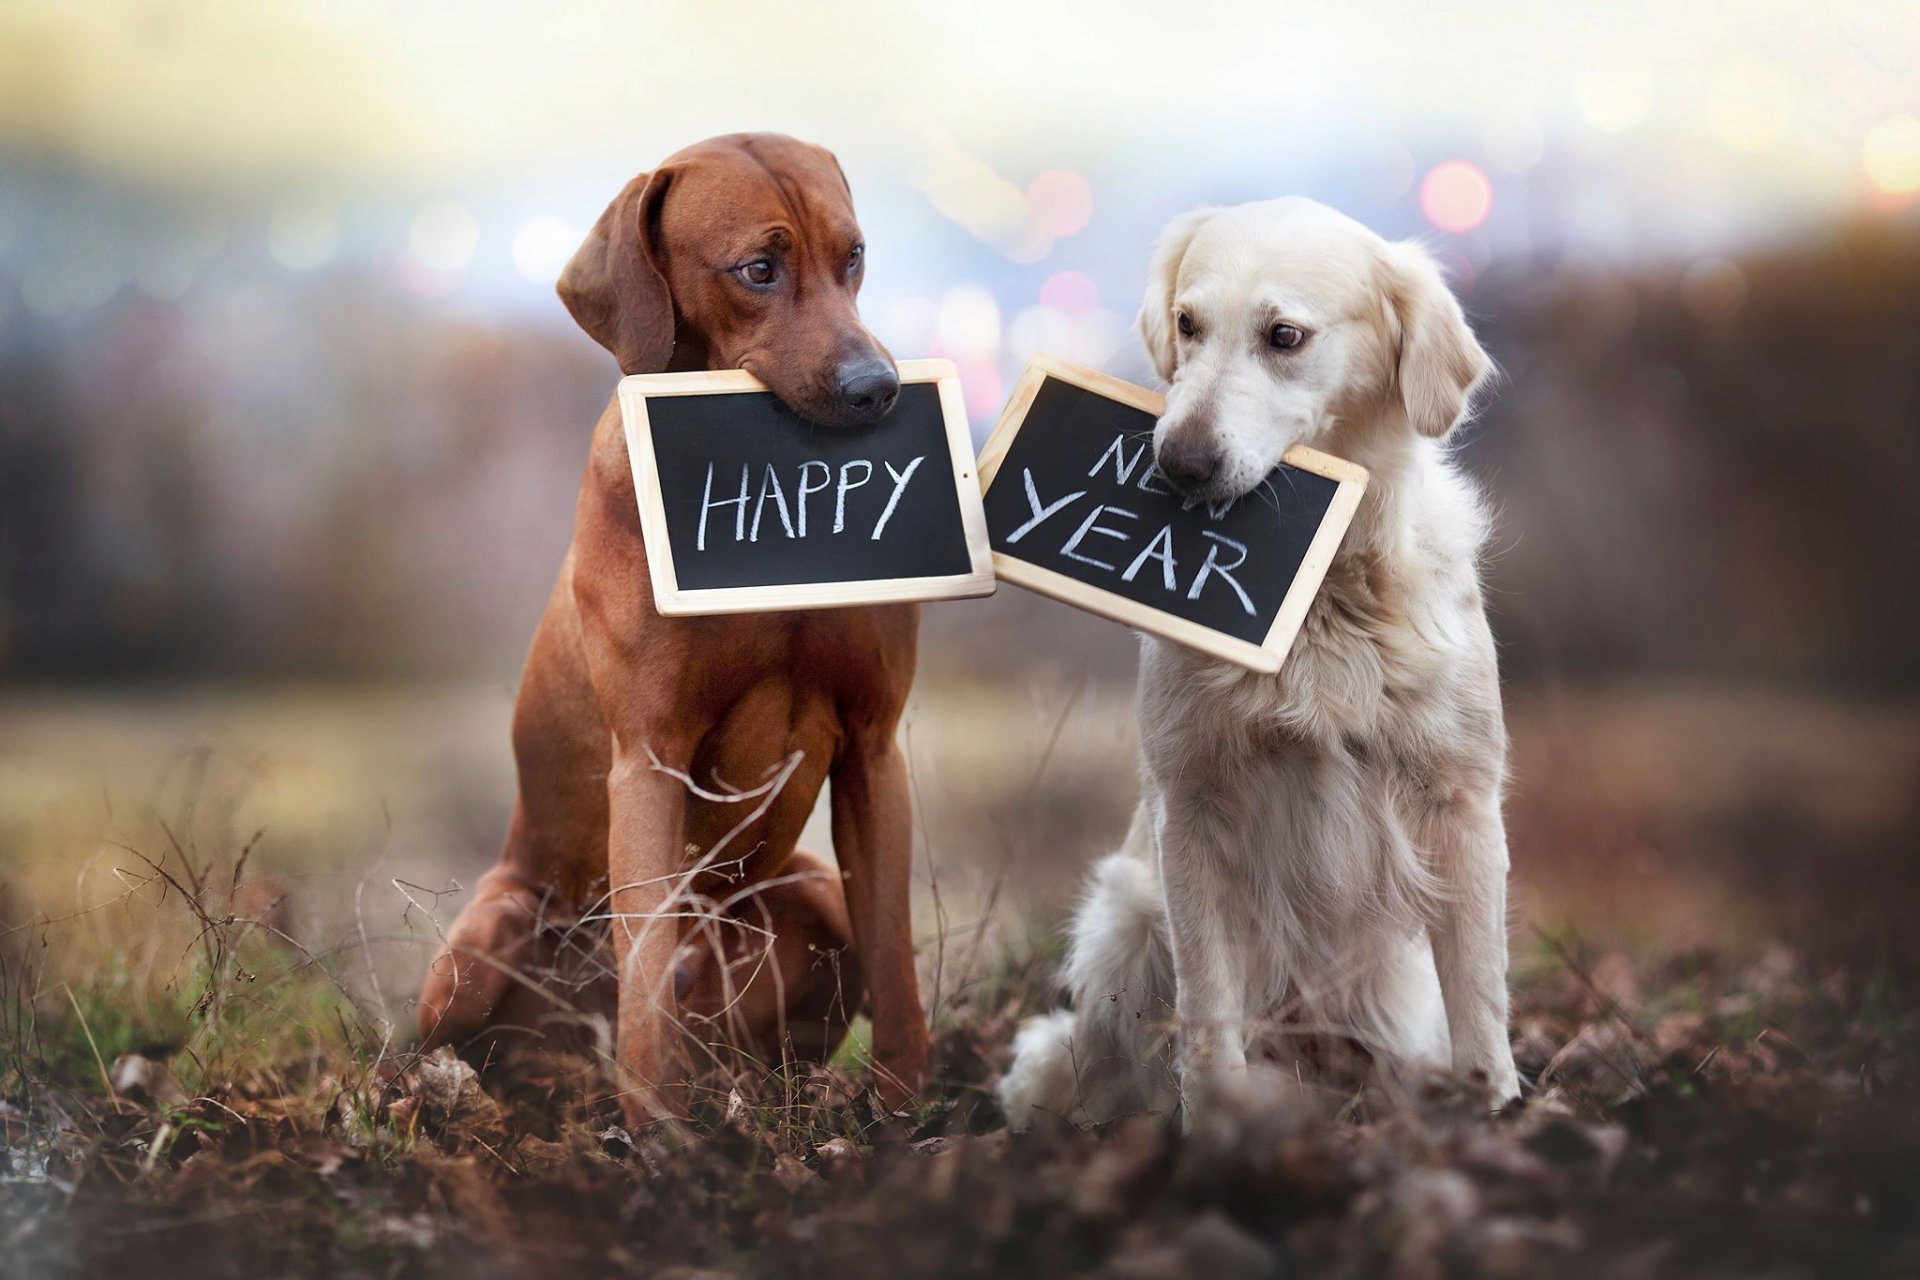 happy-new-year-dogs-tablets.jpeg